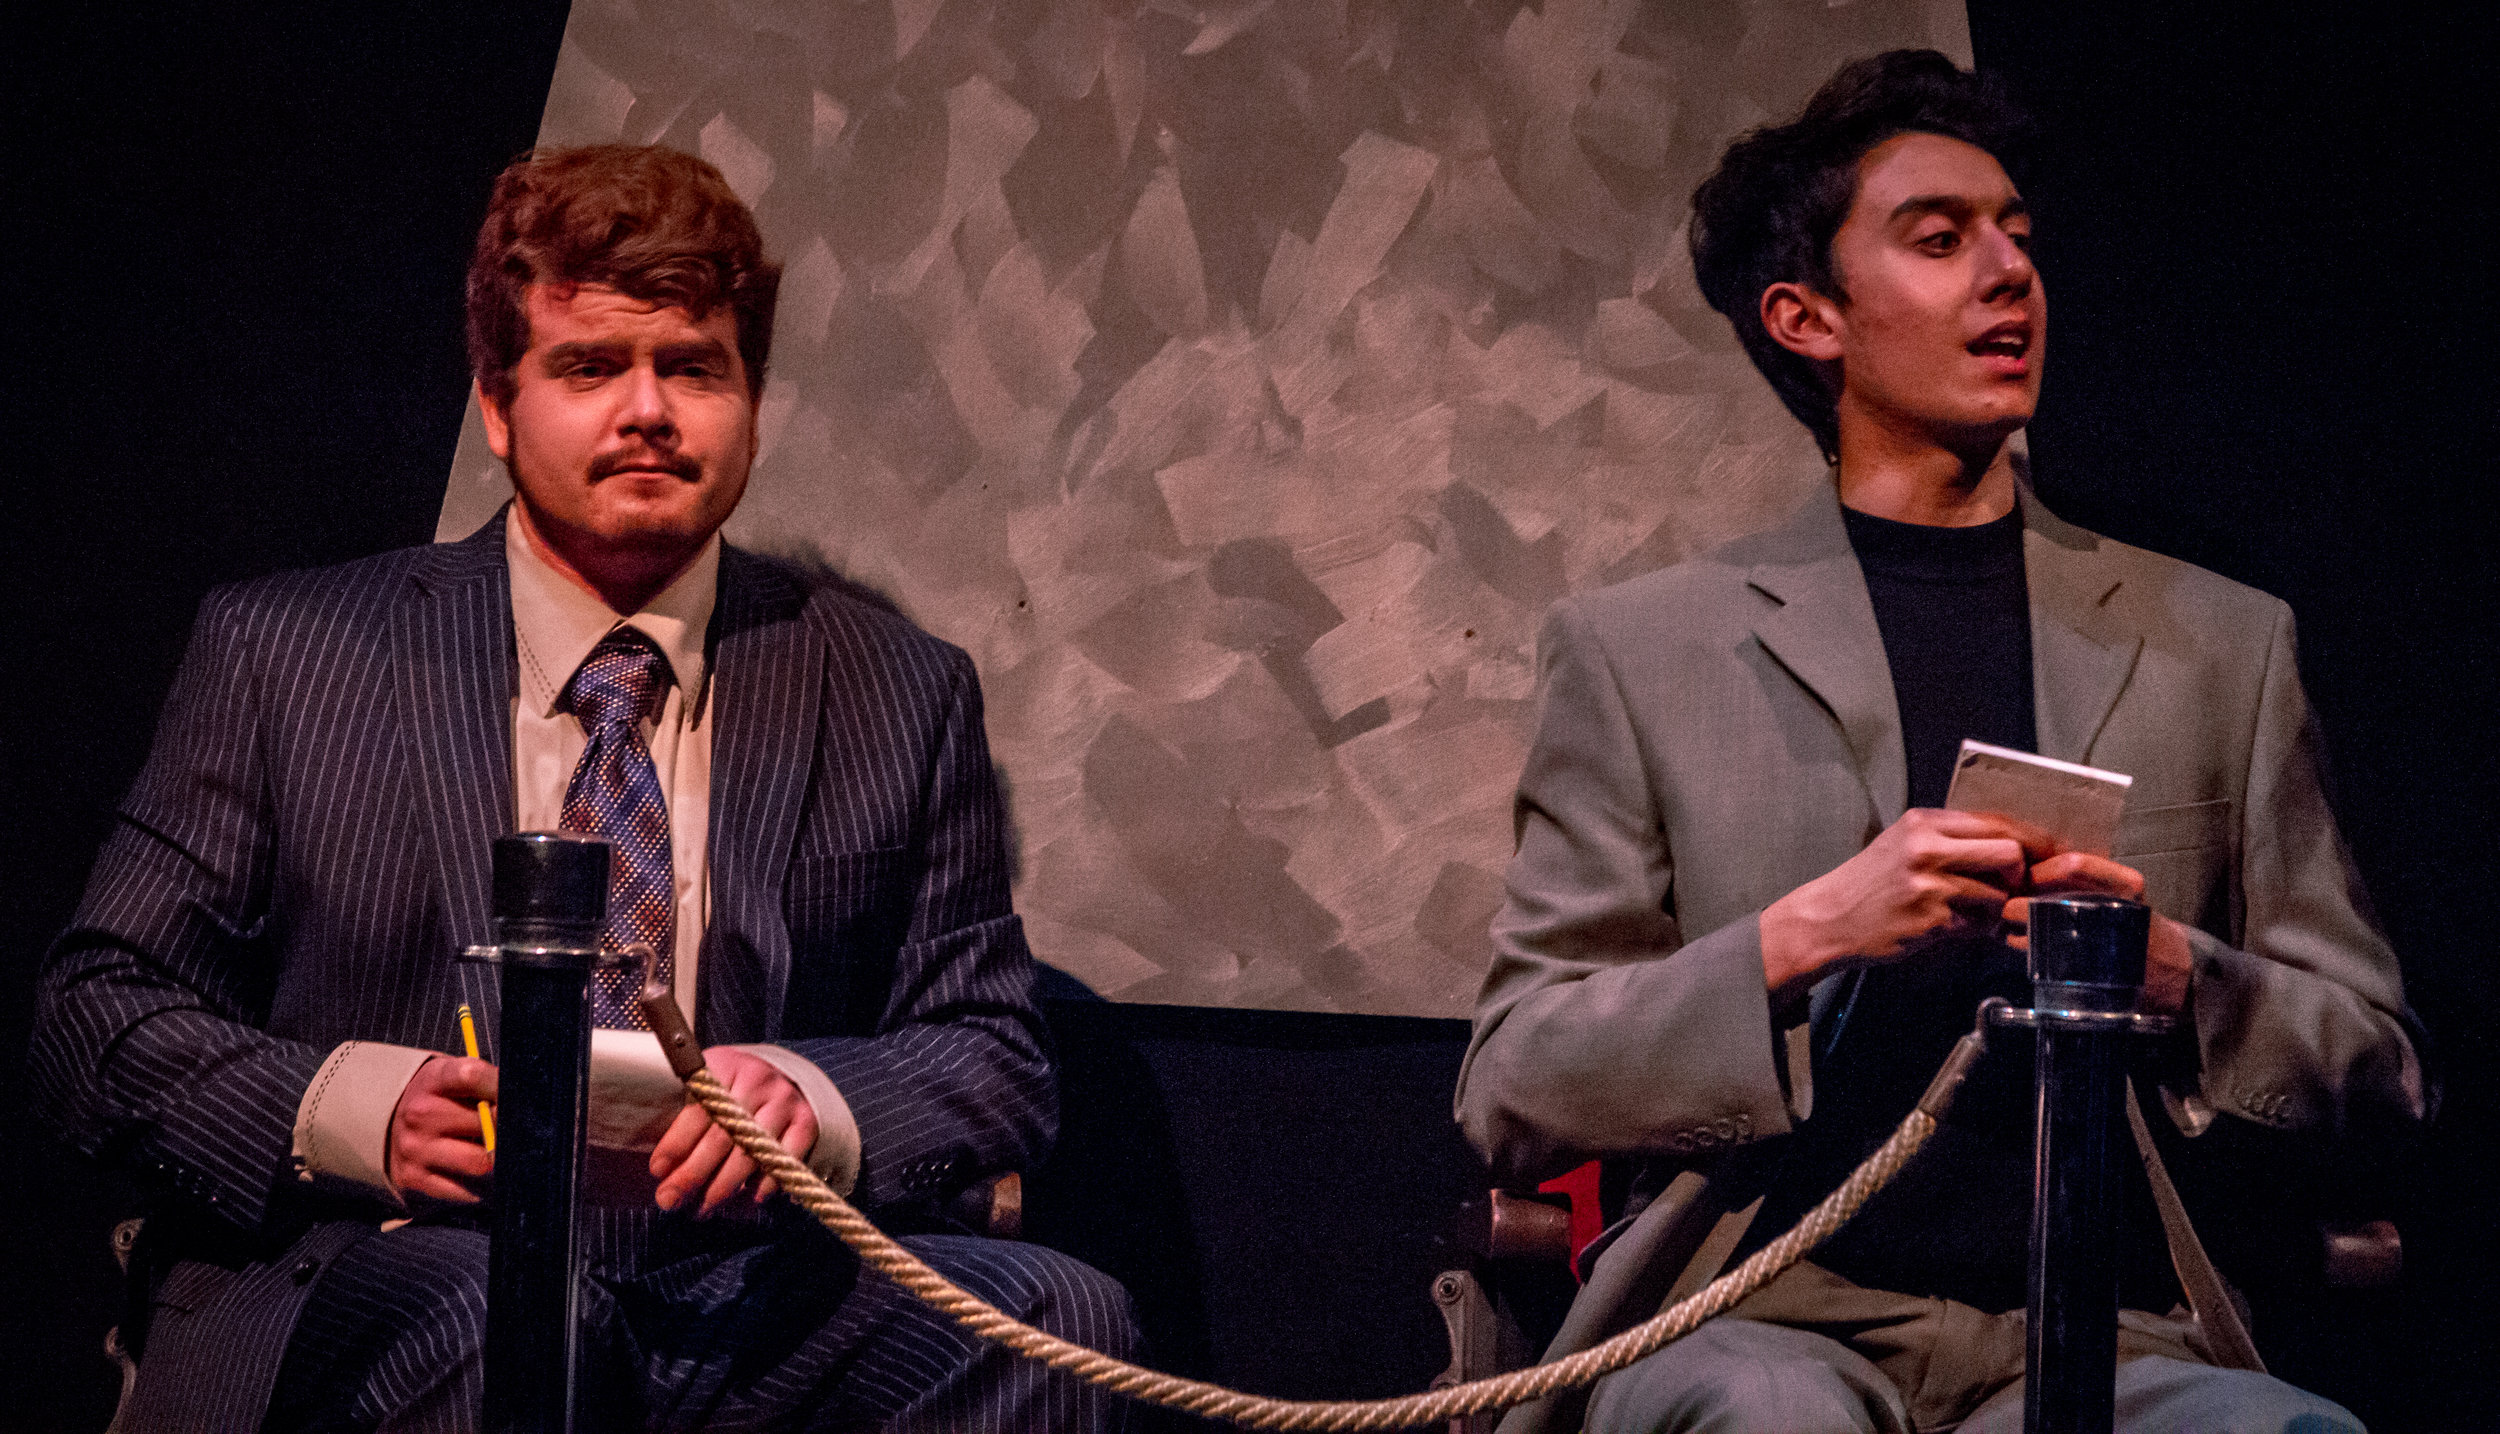 Simon Martin (left) and Andreas Sancez (right) play two critics who unwittingly get caught in the plays murder mystery. Oct. 18, 2018 Santa Monica College (SMC) studio stage. (Yasser Marte/Corsair Staff).